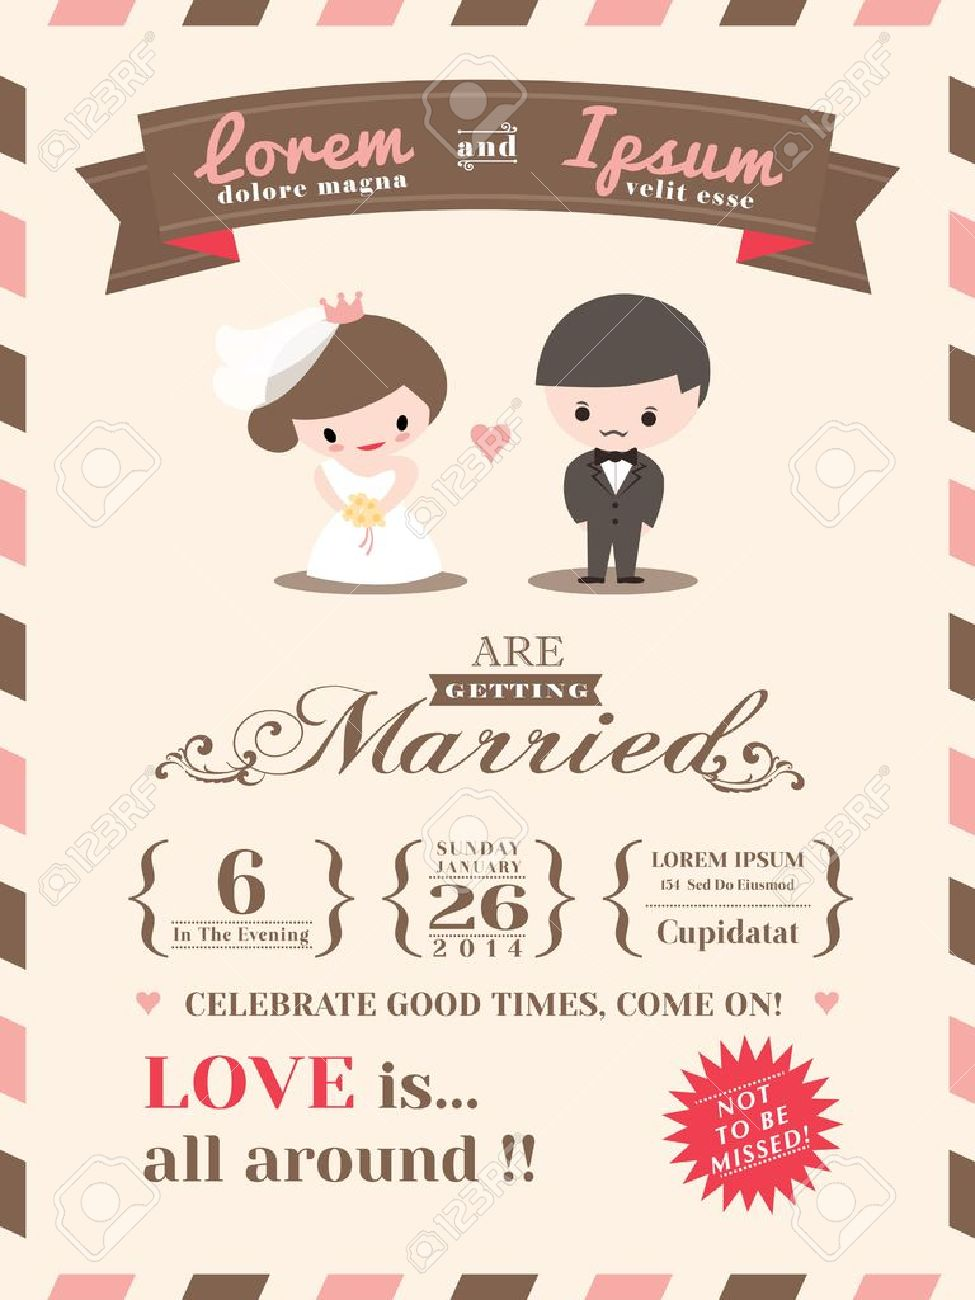 Wedding Invitation Card Template With Cute Groom And Bride Cartoon